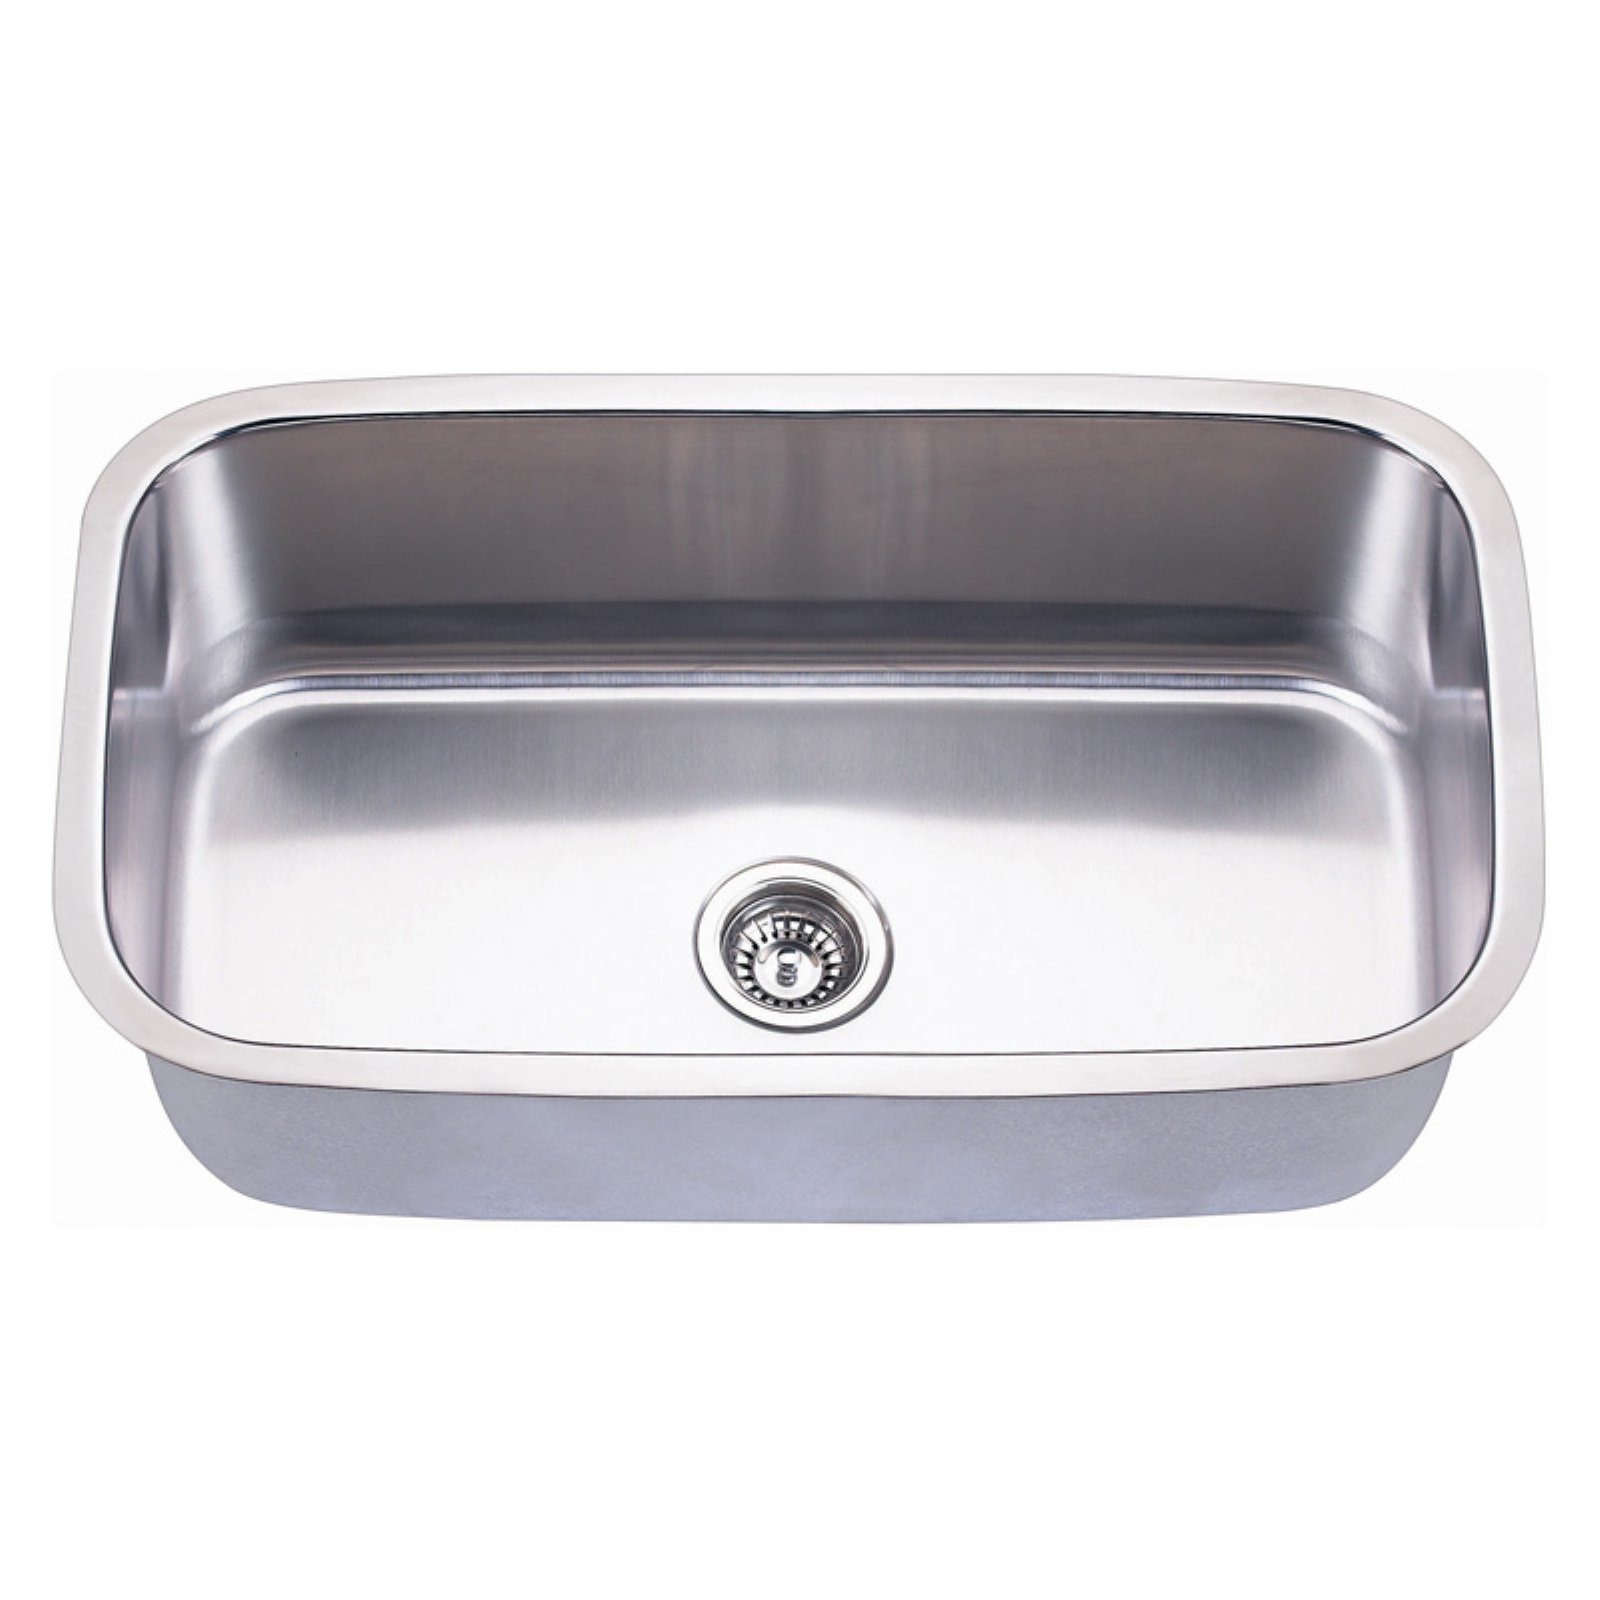 Empire 31 1/2 Inch Undermount Single Bowl 16 Gauge Stainless Steel Kitchen  Sink with Soundproofing - Walmart.com